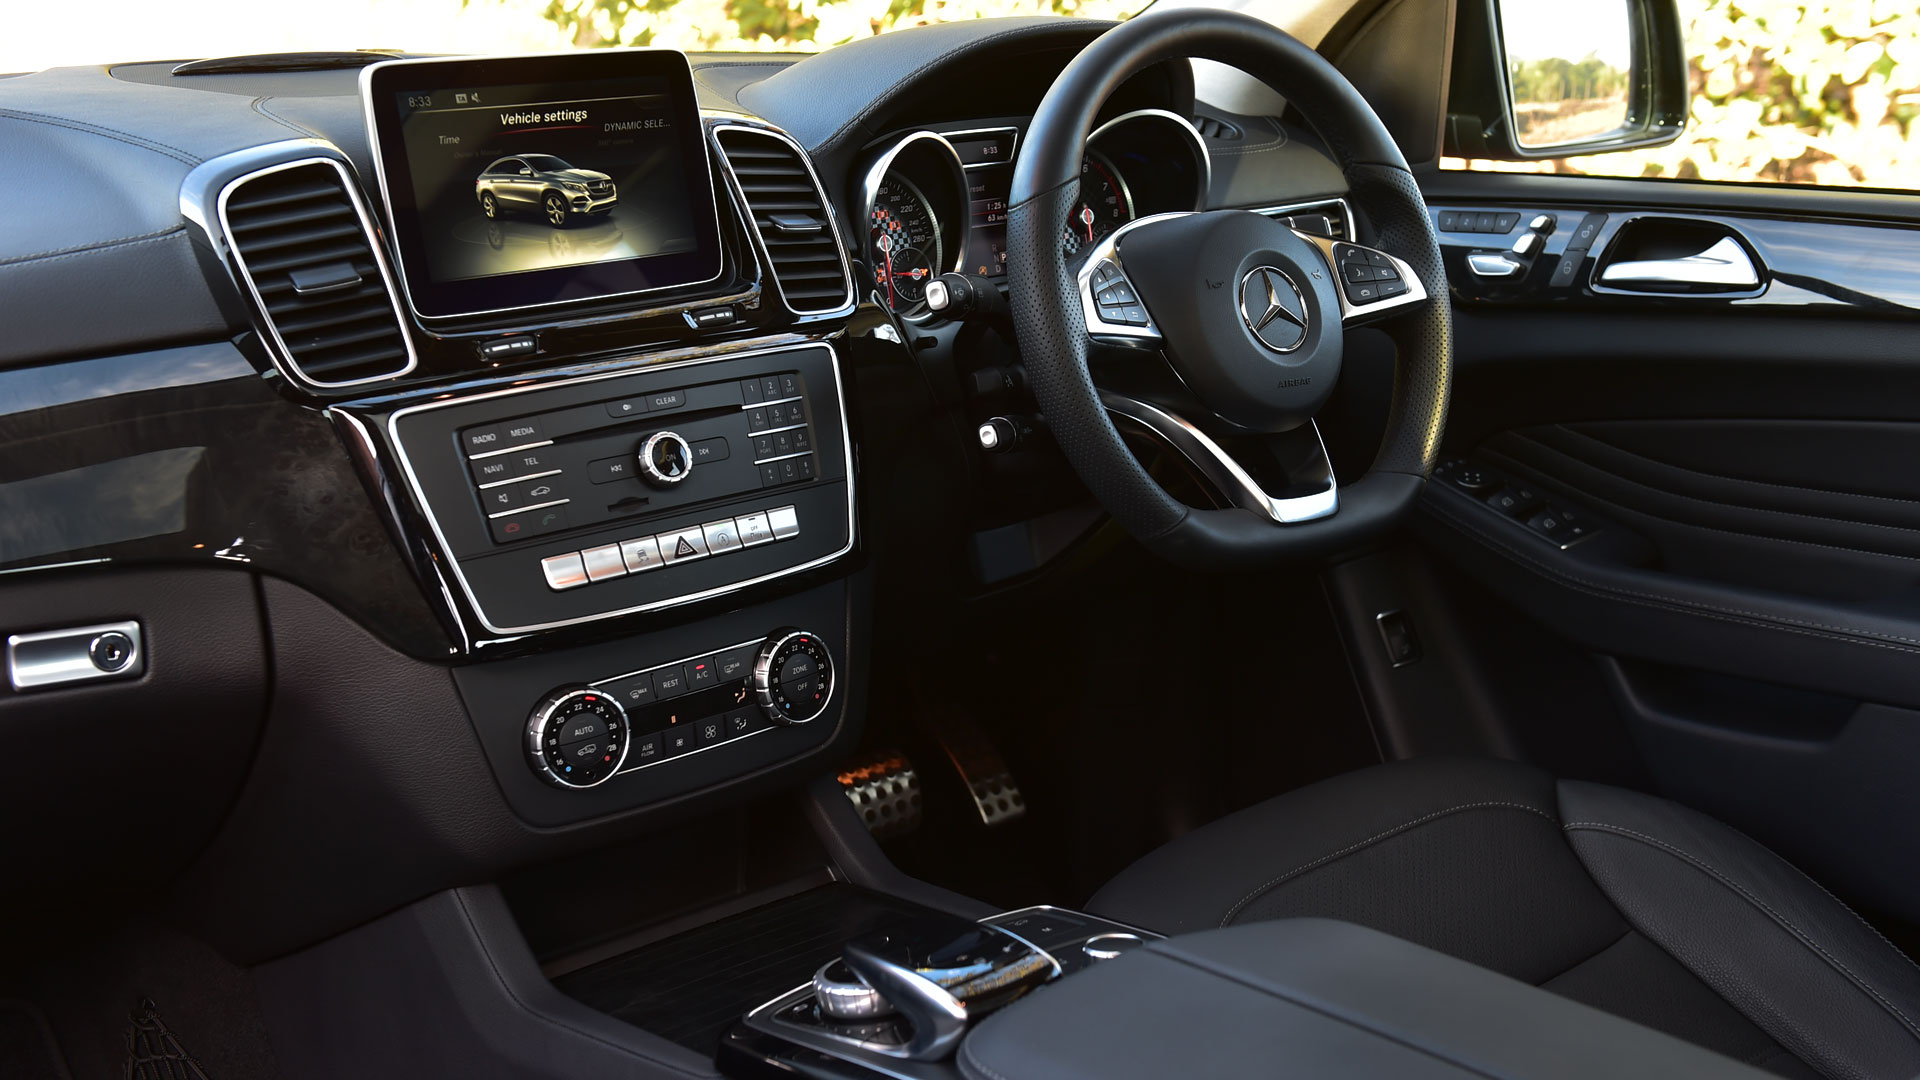 Image result for mercedes-benz gle 250d INDIA INTERIOR